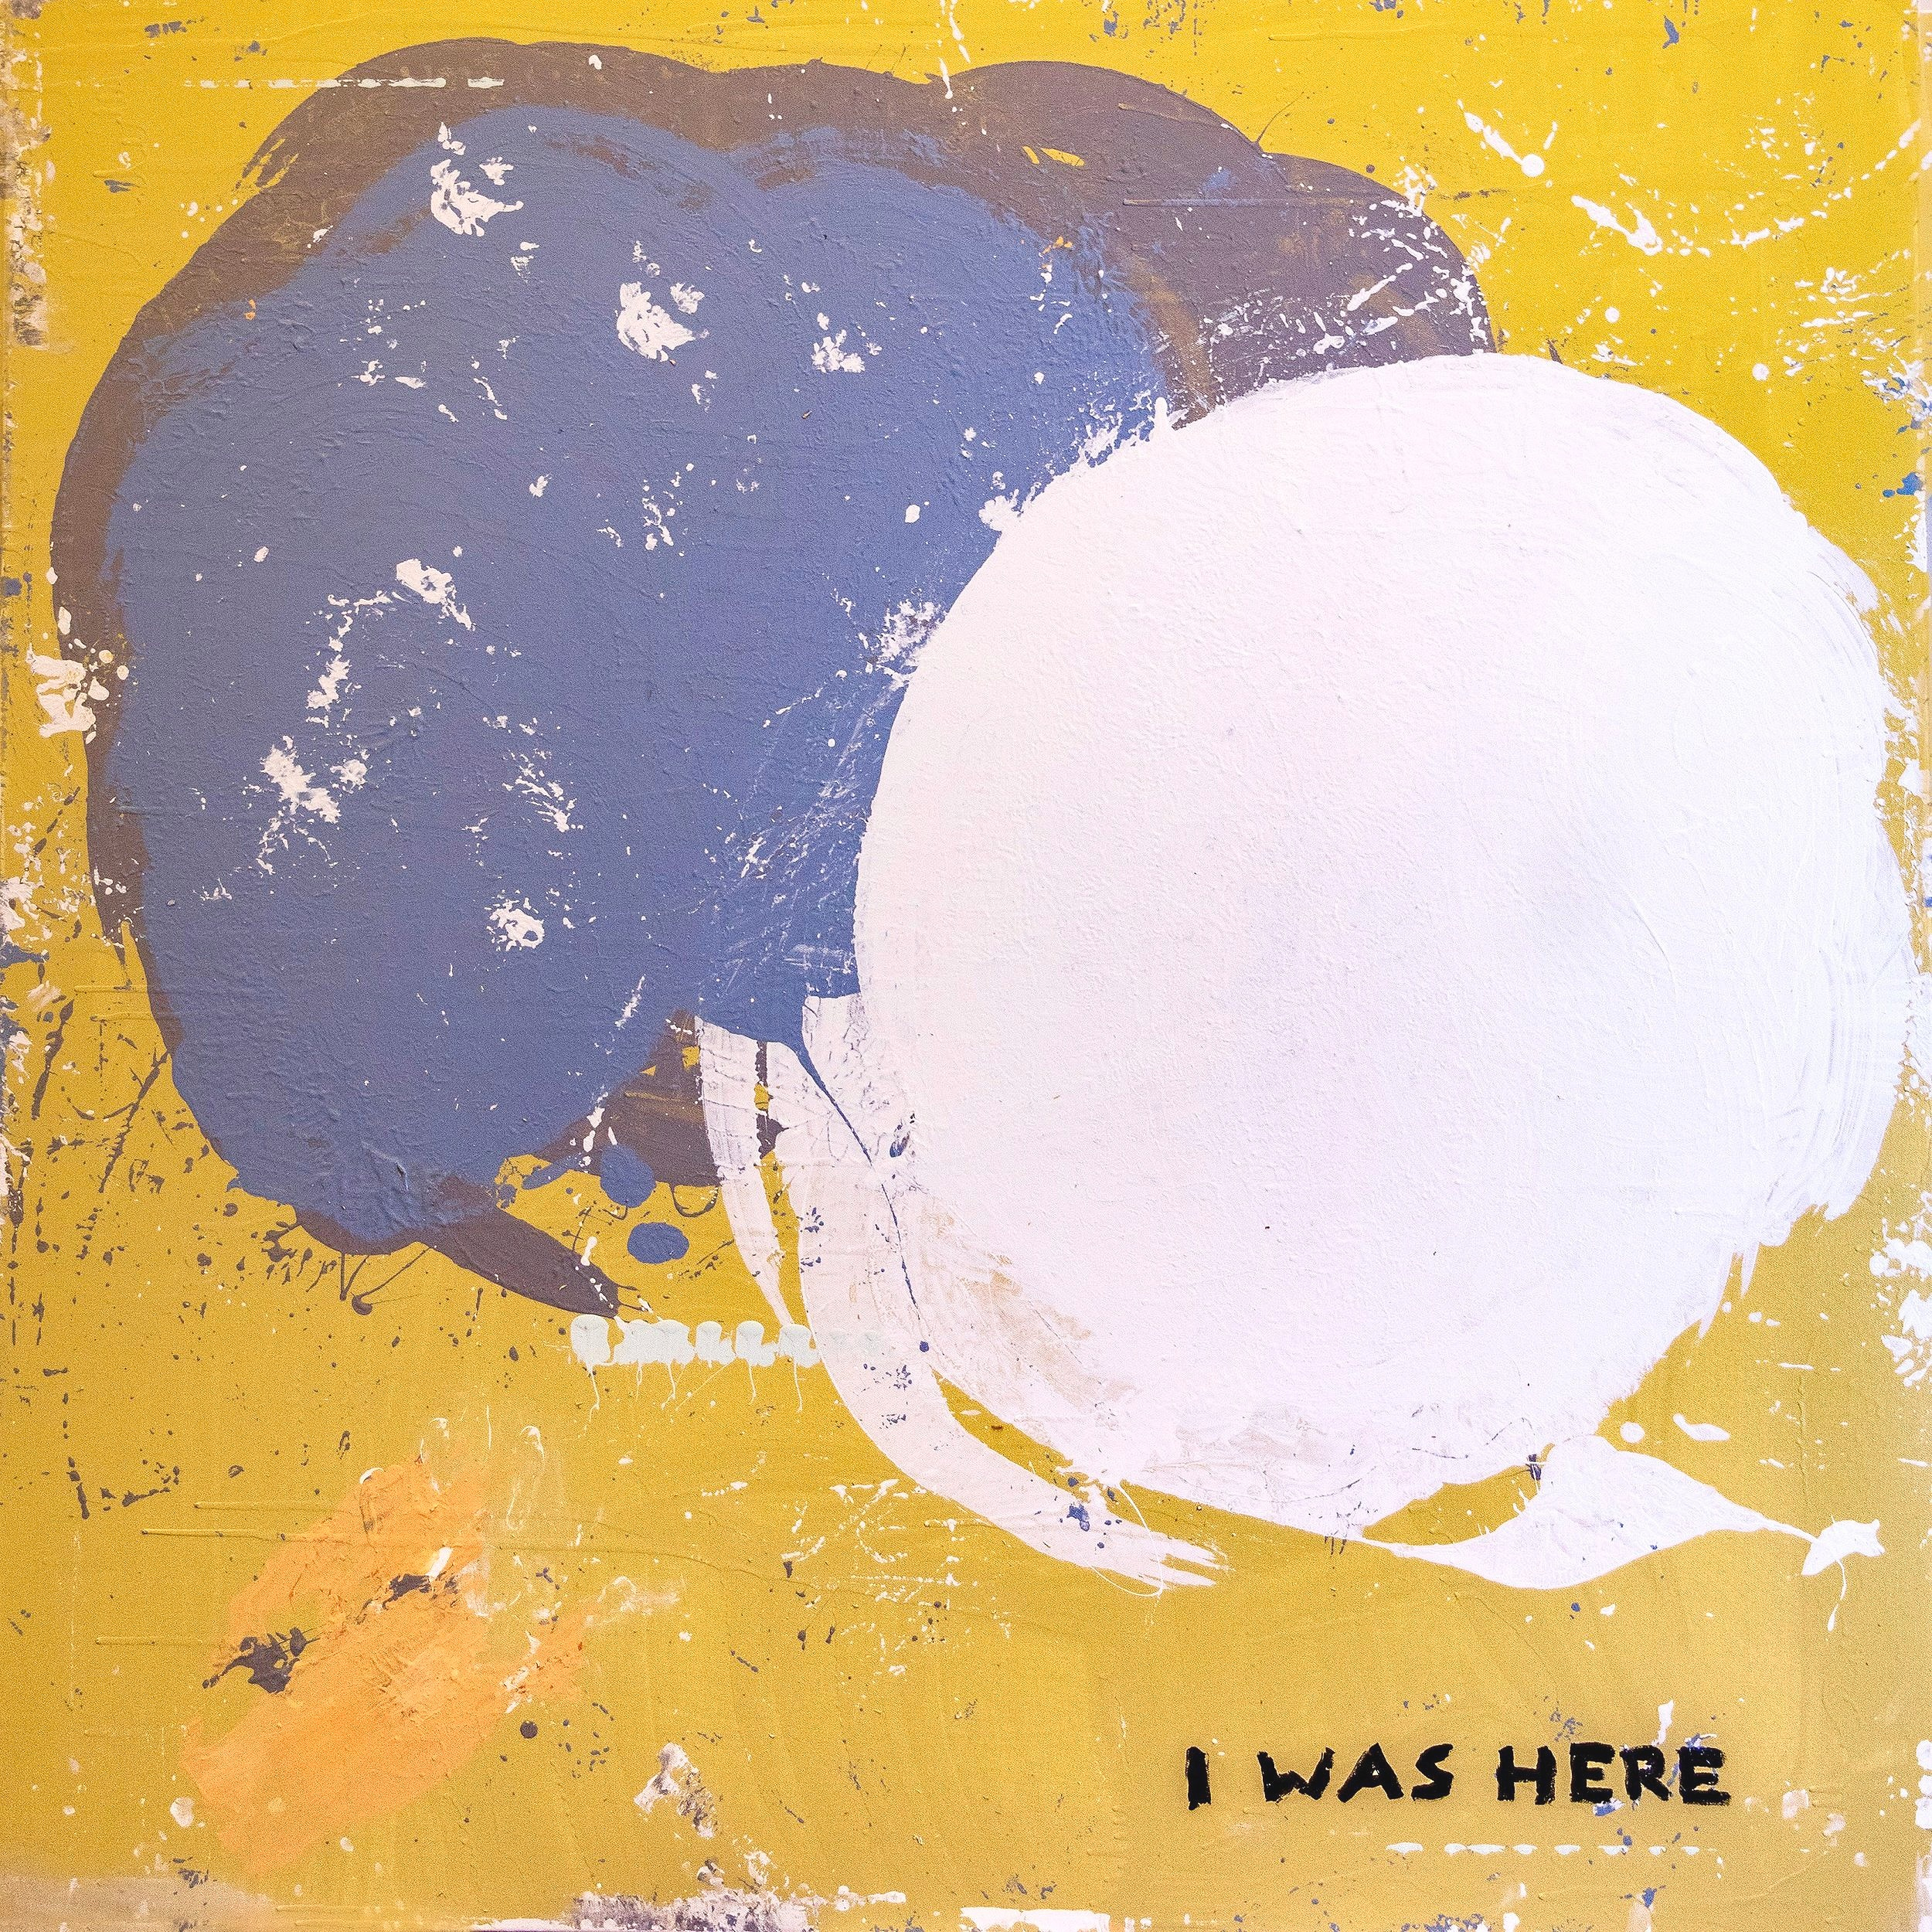 003 - I Was Here